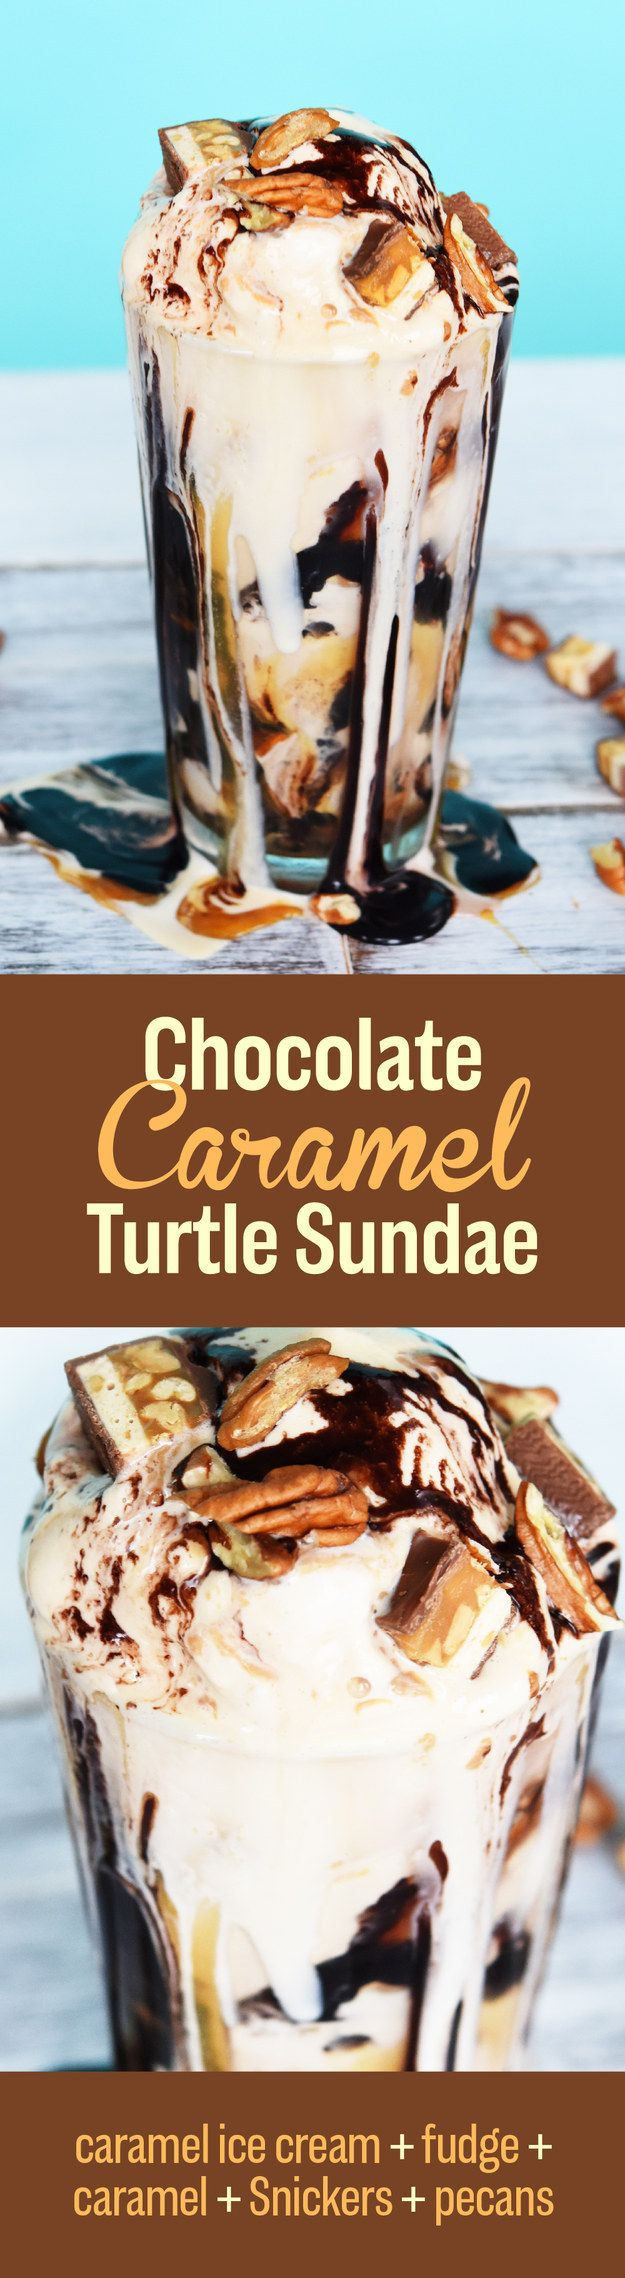 Chocolate Caramel Turtle Sundae | 7 Insanely Delicious Sundaes You Need To Eat Before Summer Is Over